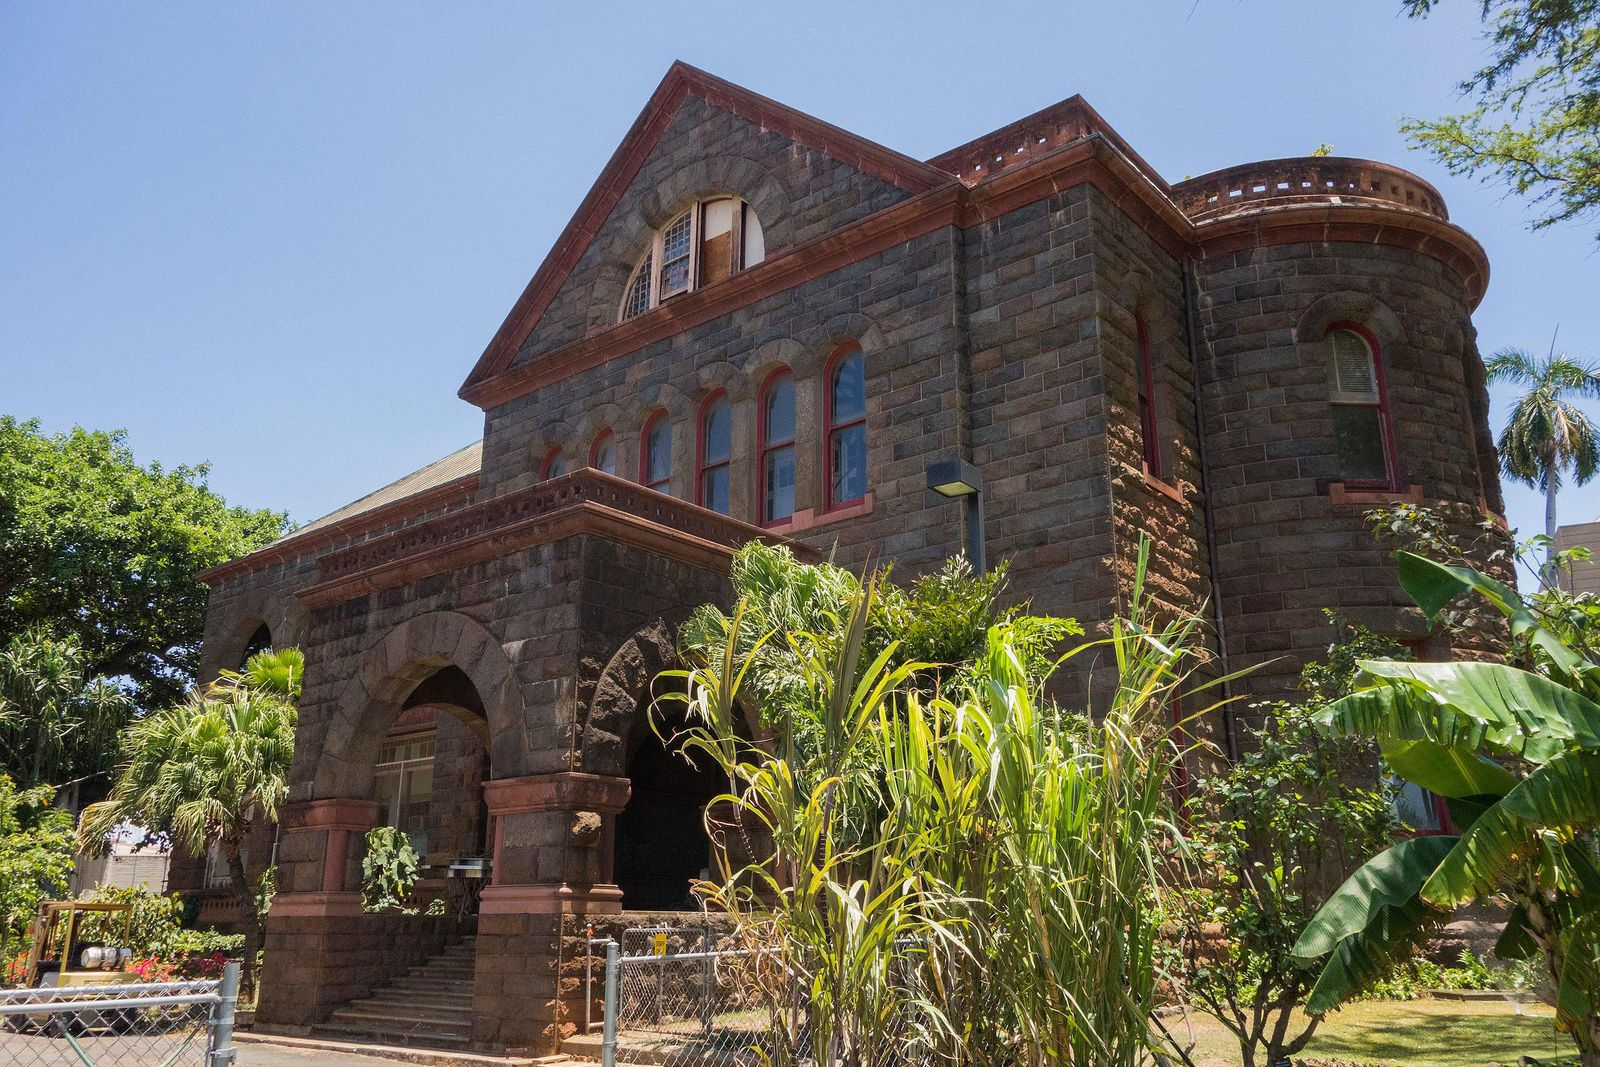 Exterior of Bernice Pauahi Bishop Museum in Honolulu